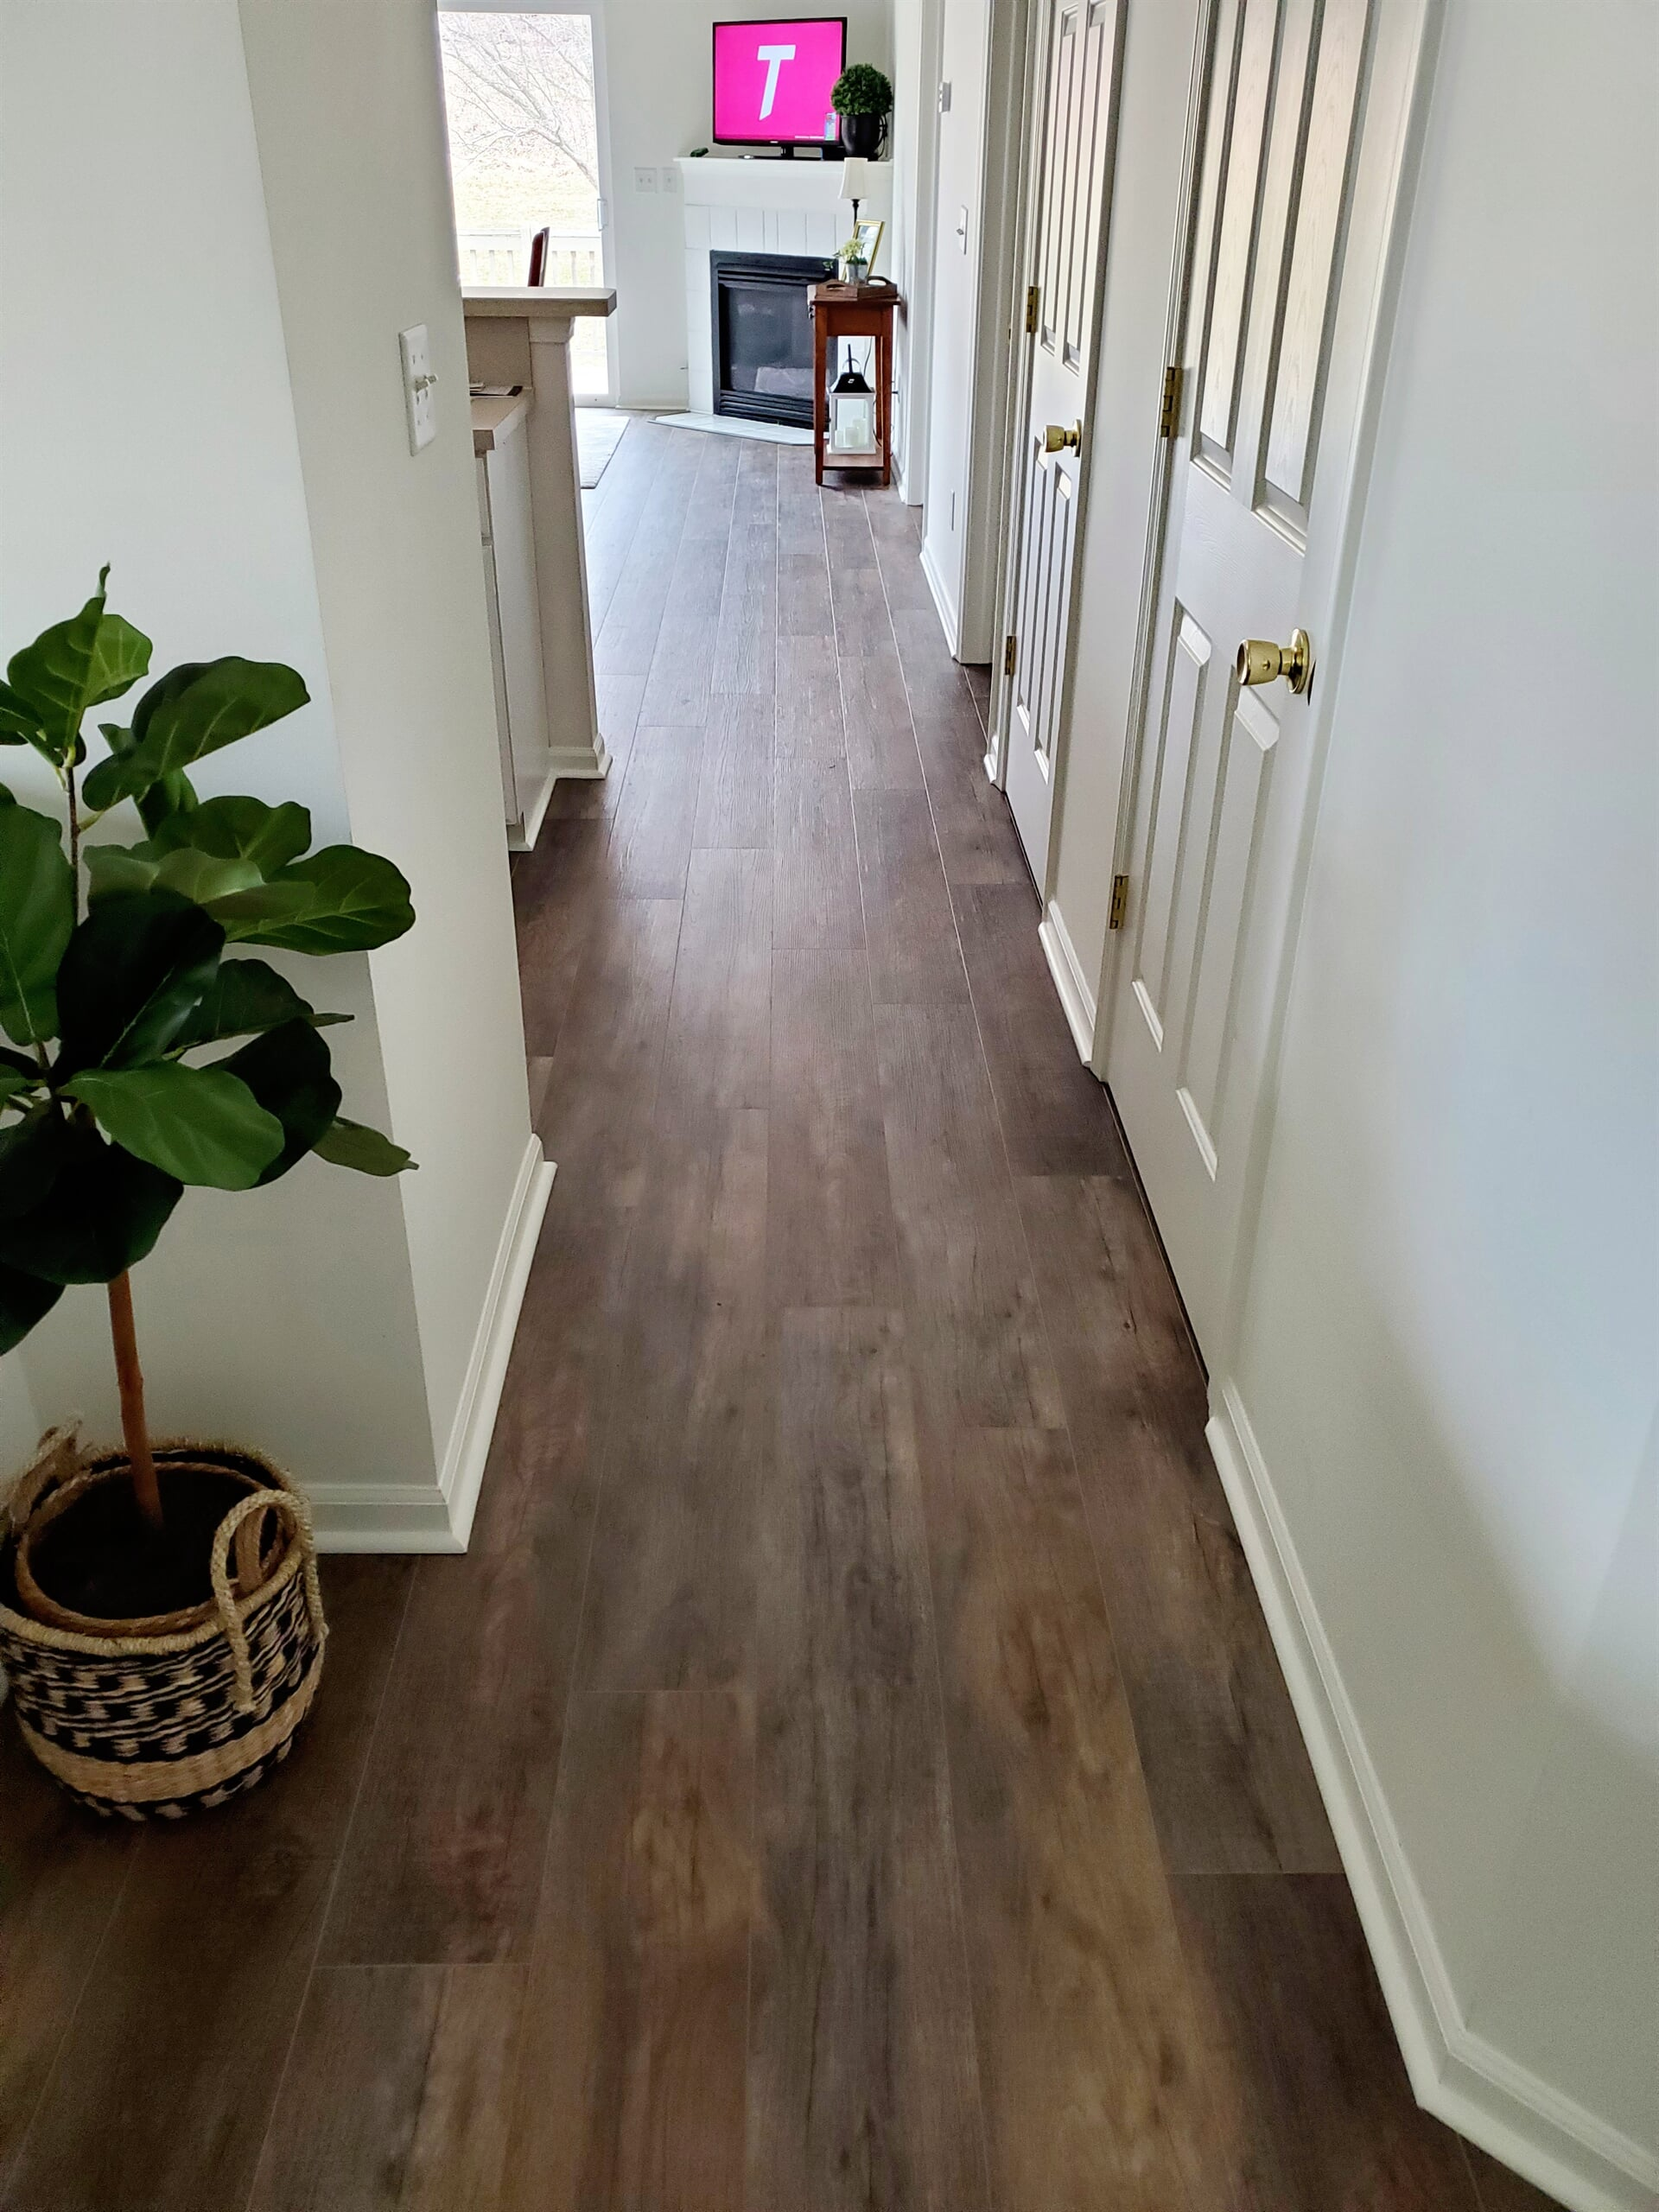 Plank flooring in Lansing, MI from Absolute Floor Covering